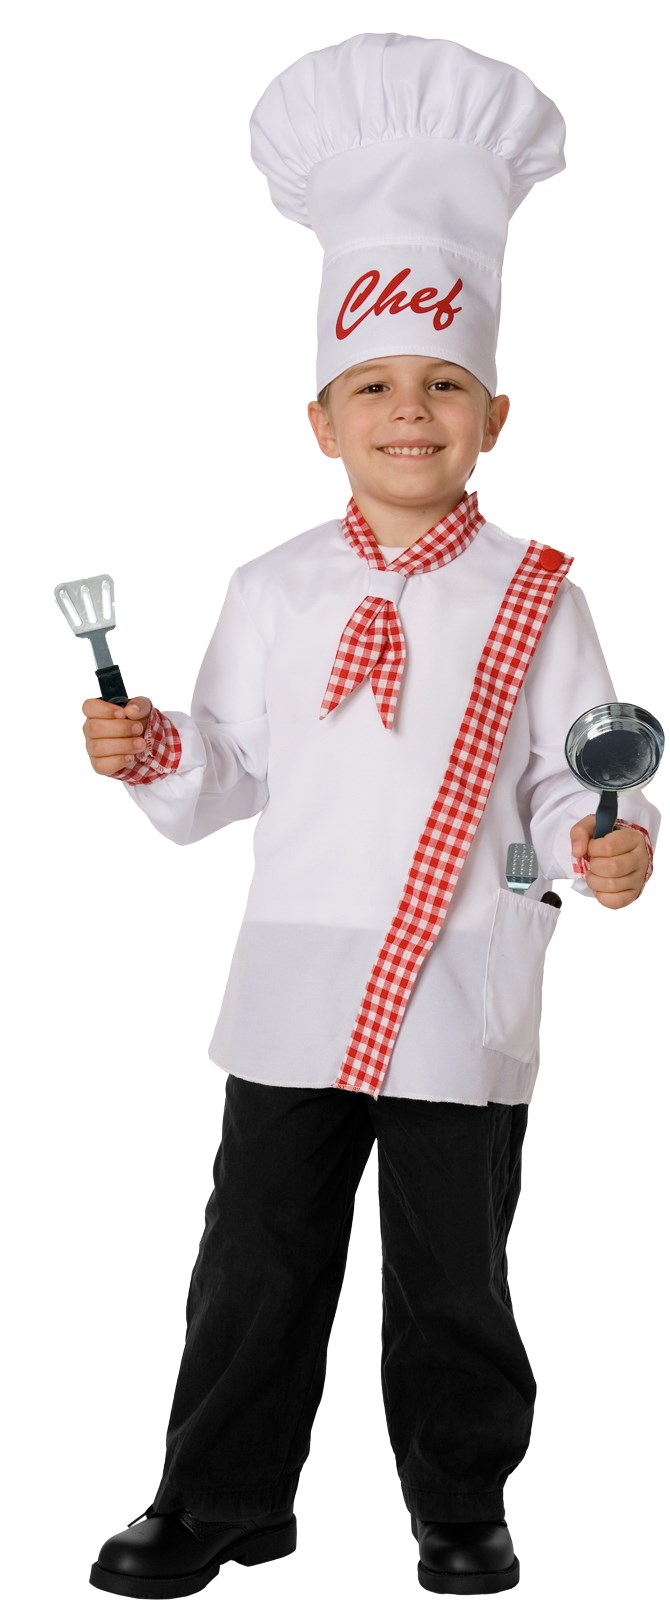 Chef Kids Costume Kit Fits Sizes 4 to 8